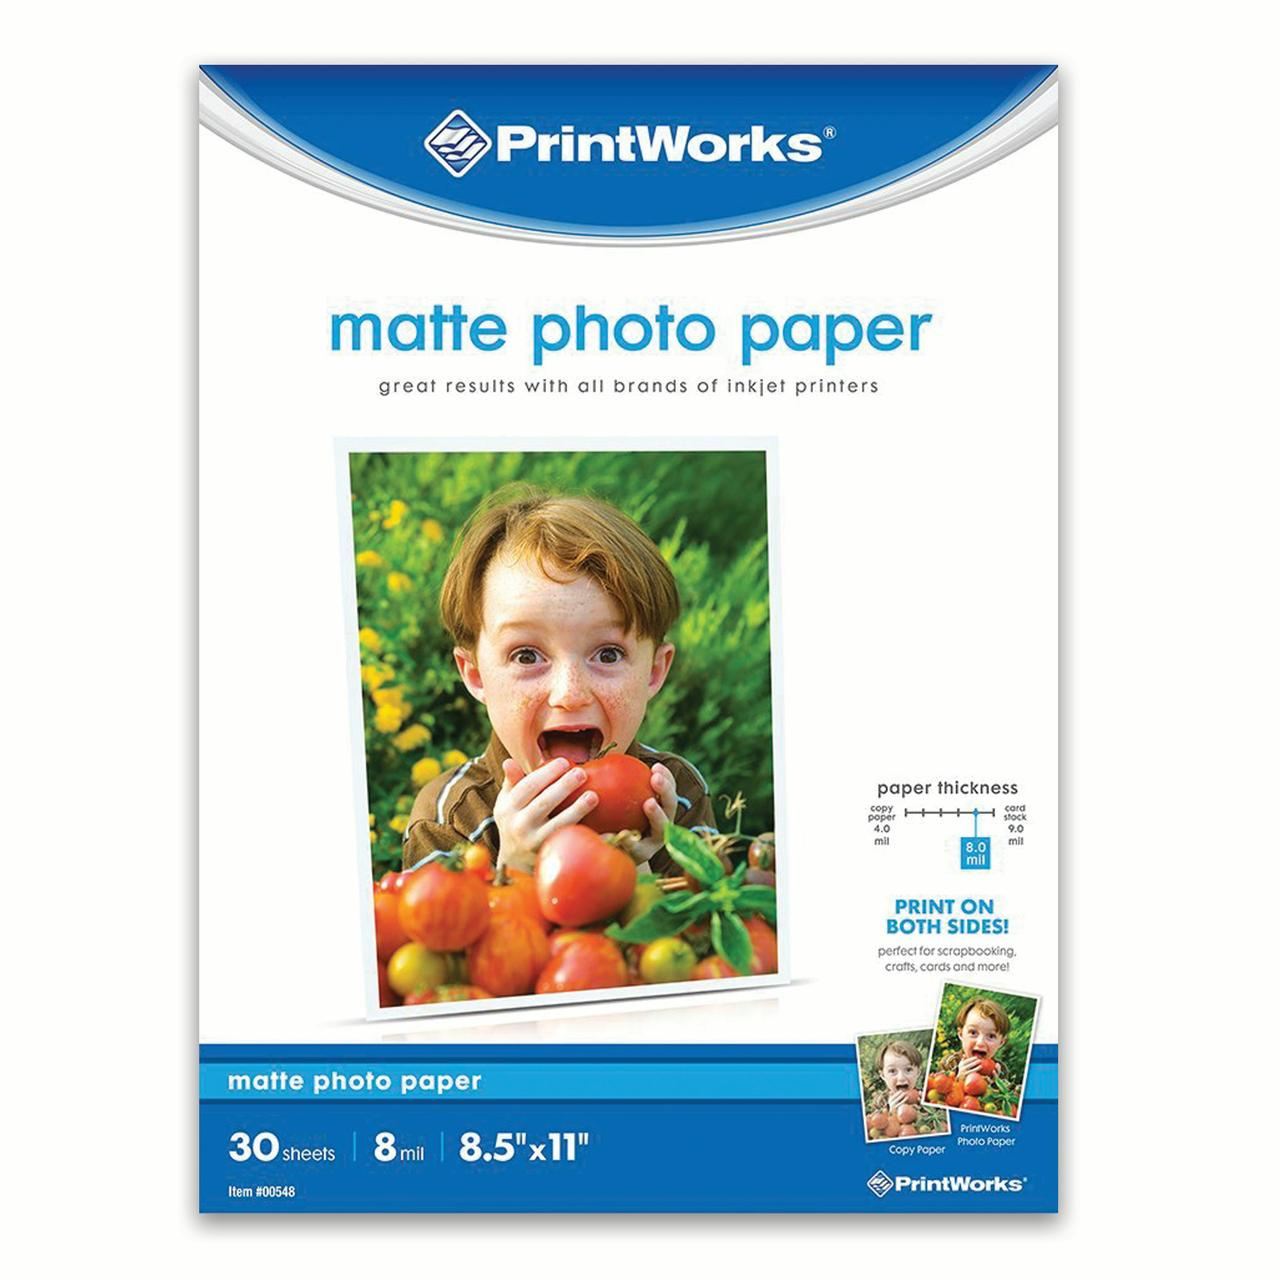 Printworks, Matte Photo Paper, 8.5x11 In, 8 Mil, 30 Sheets, (00548)